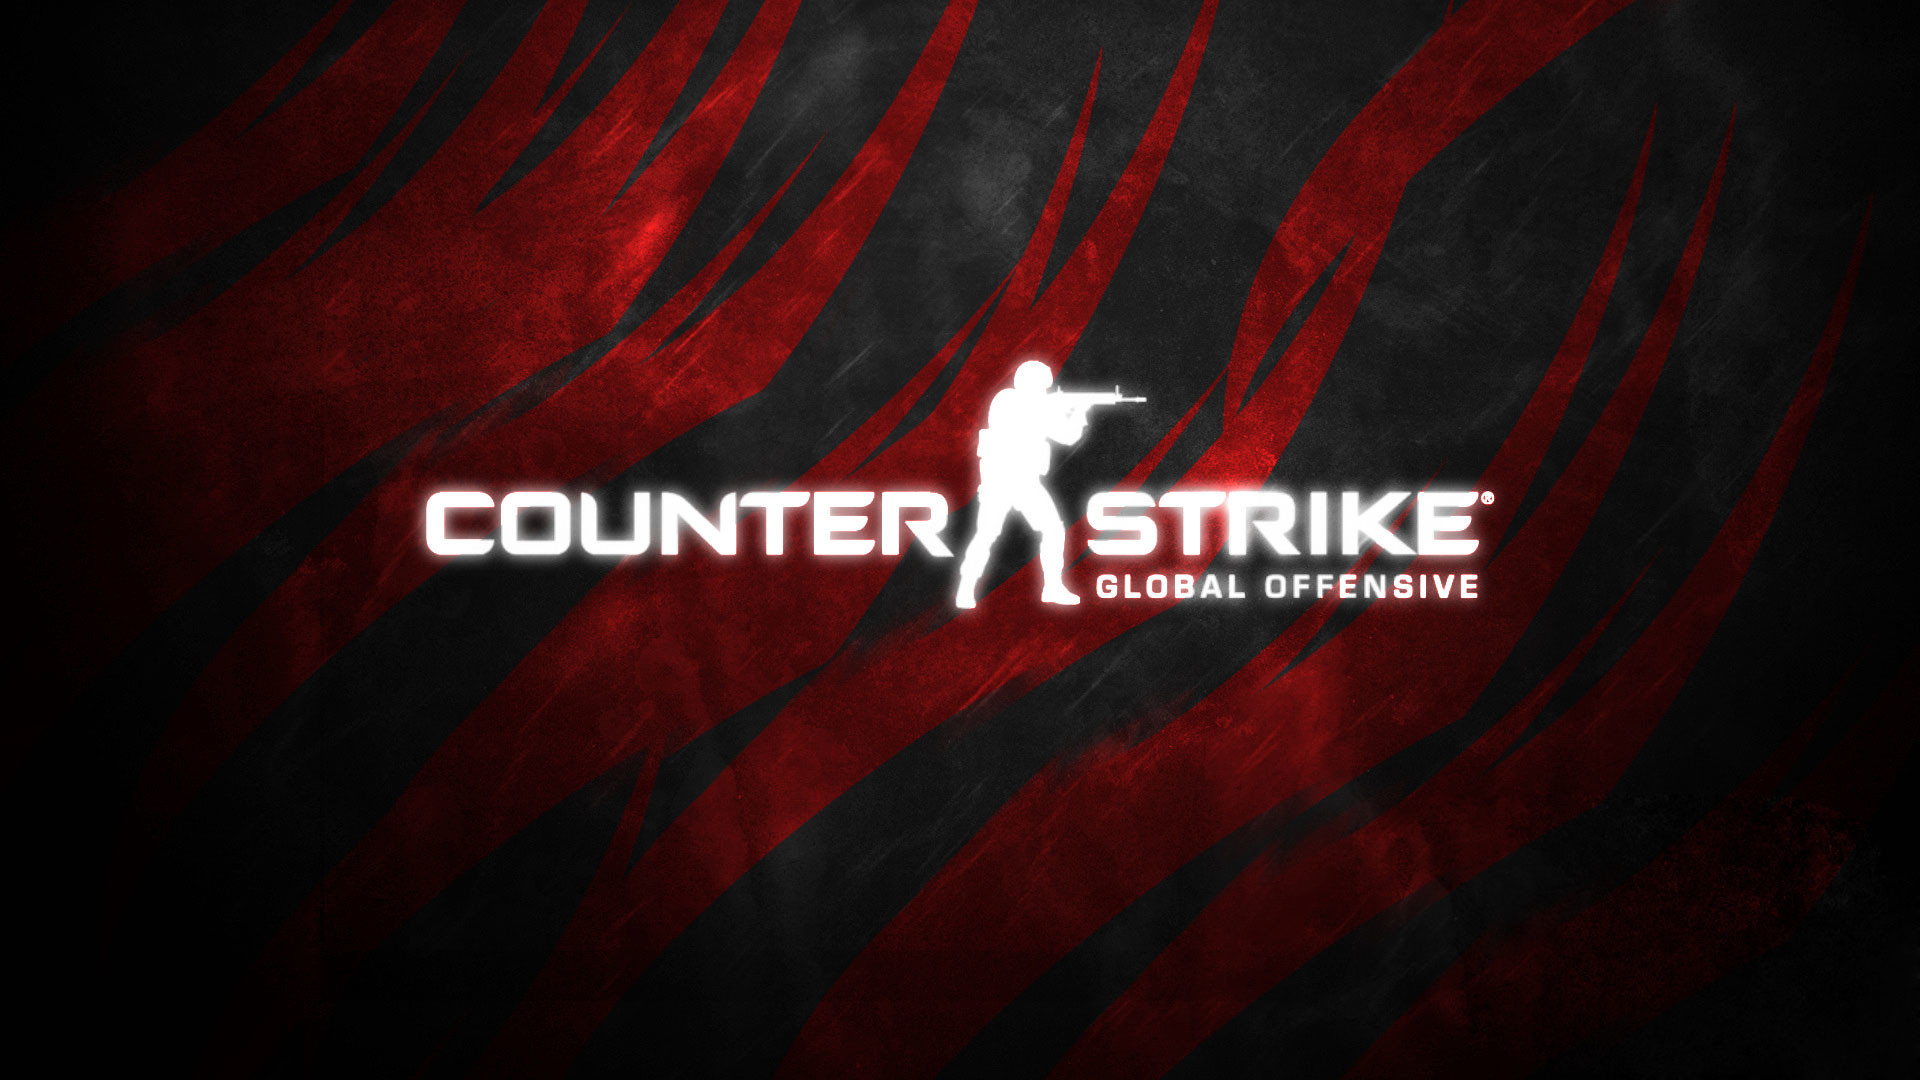 Res: 1920x1080, Counter Strike Global Offensive 1080p Wallpaper